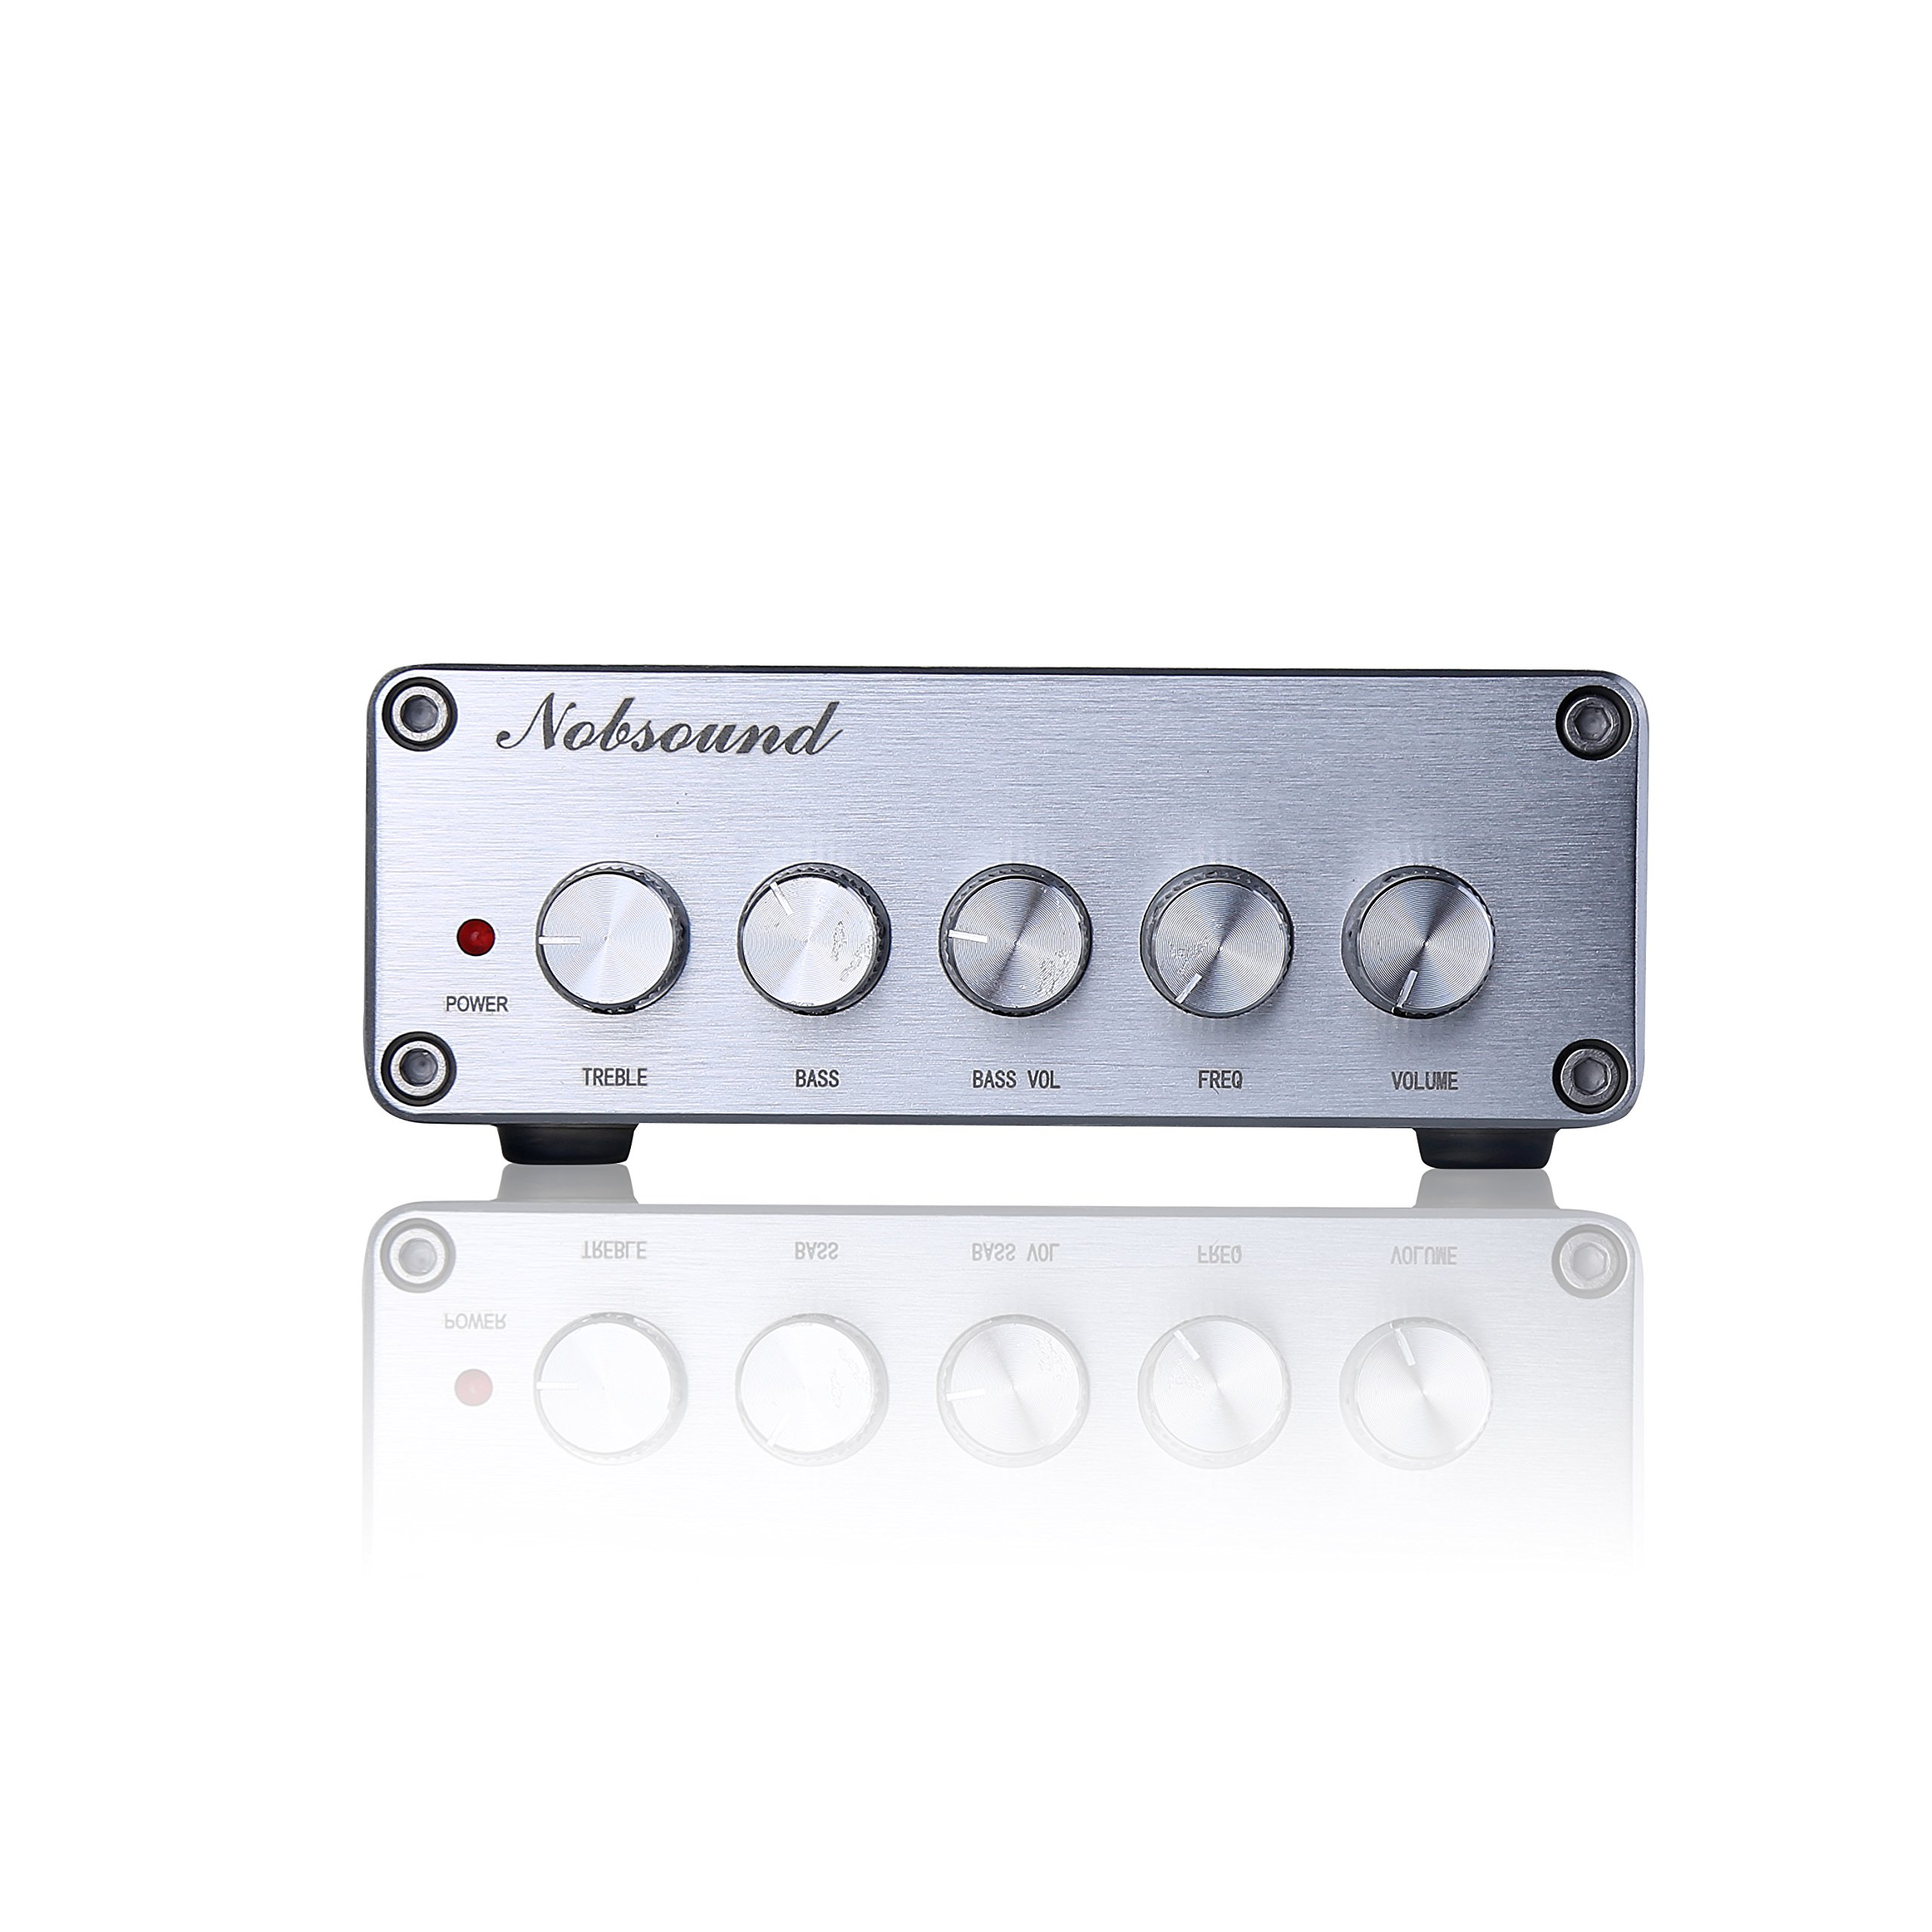 Nobsound HiFi TPA3116D2 2.1 Channel Digital Audio Power Amplifier Stereo Amp 2×50W+100W Subwoofer Treble Bass Independent Adjustment (with power supply) by Nobsound (Image #5)